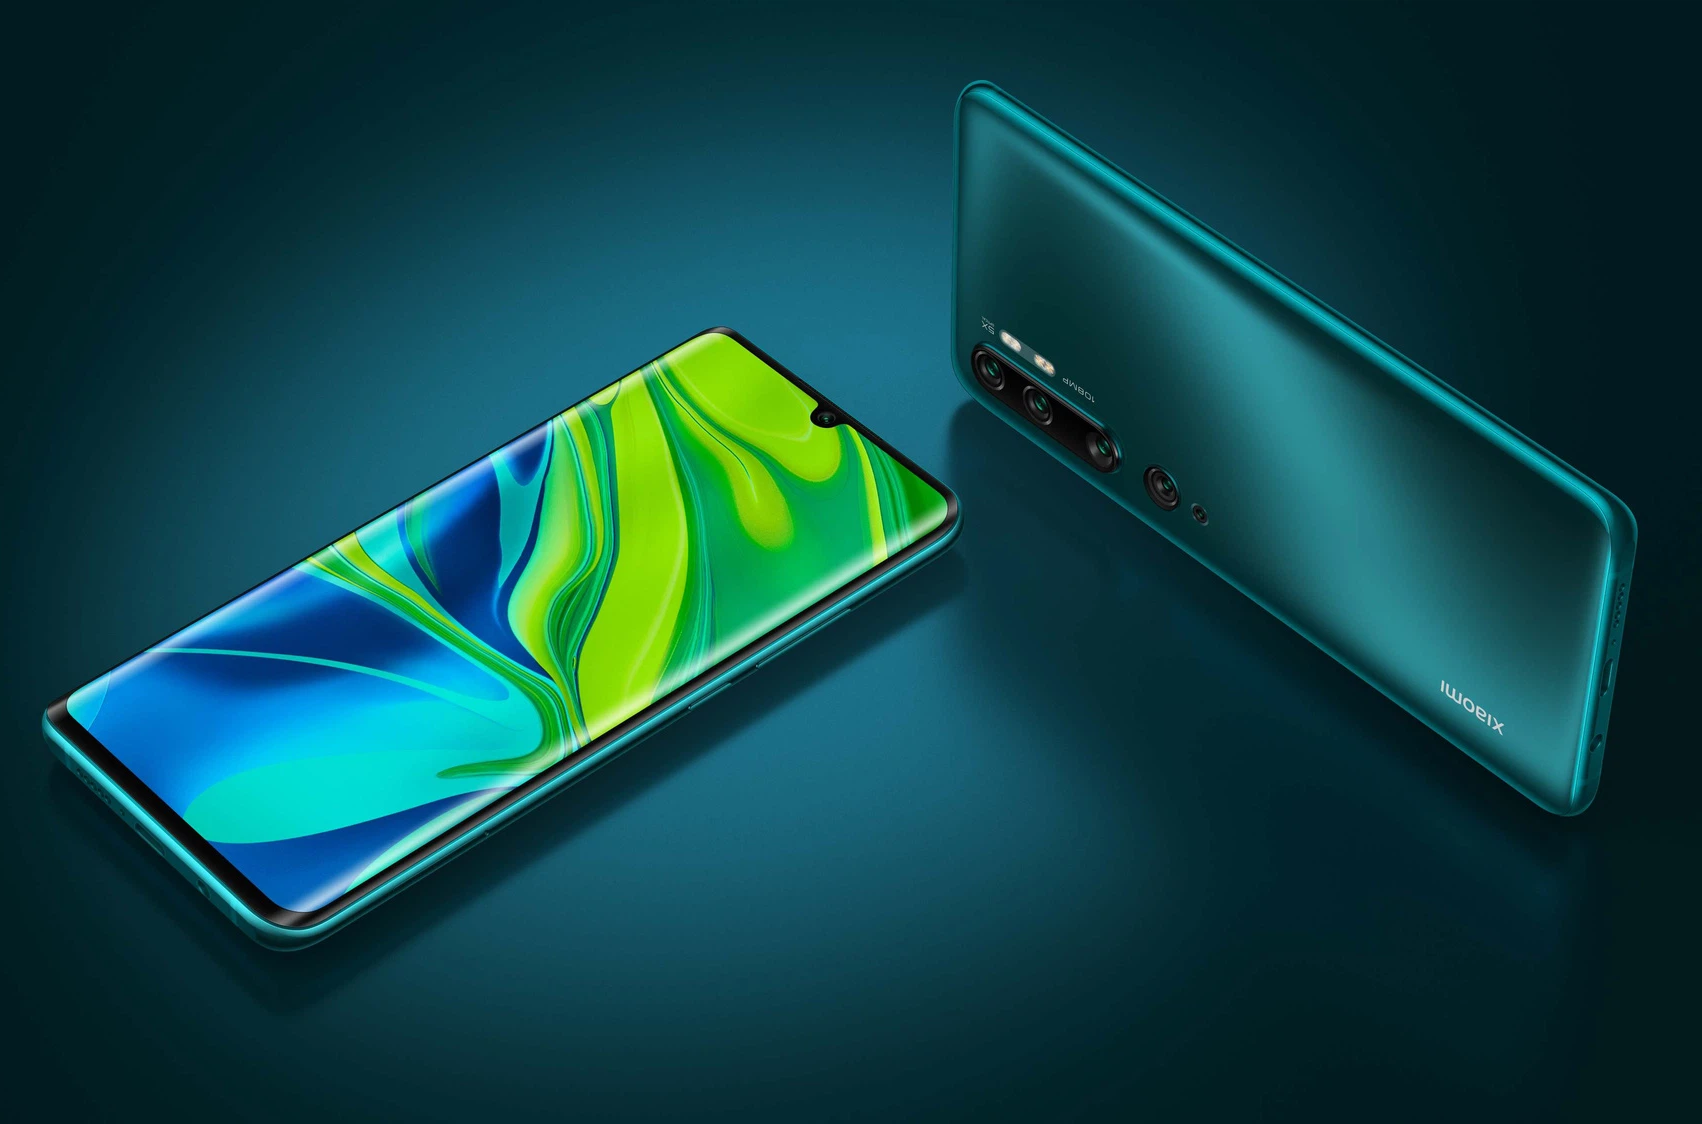 The Mi Note 10 and Mi Note 10 Pro are now receiving the Android 11 update in Europe